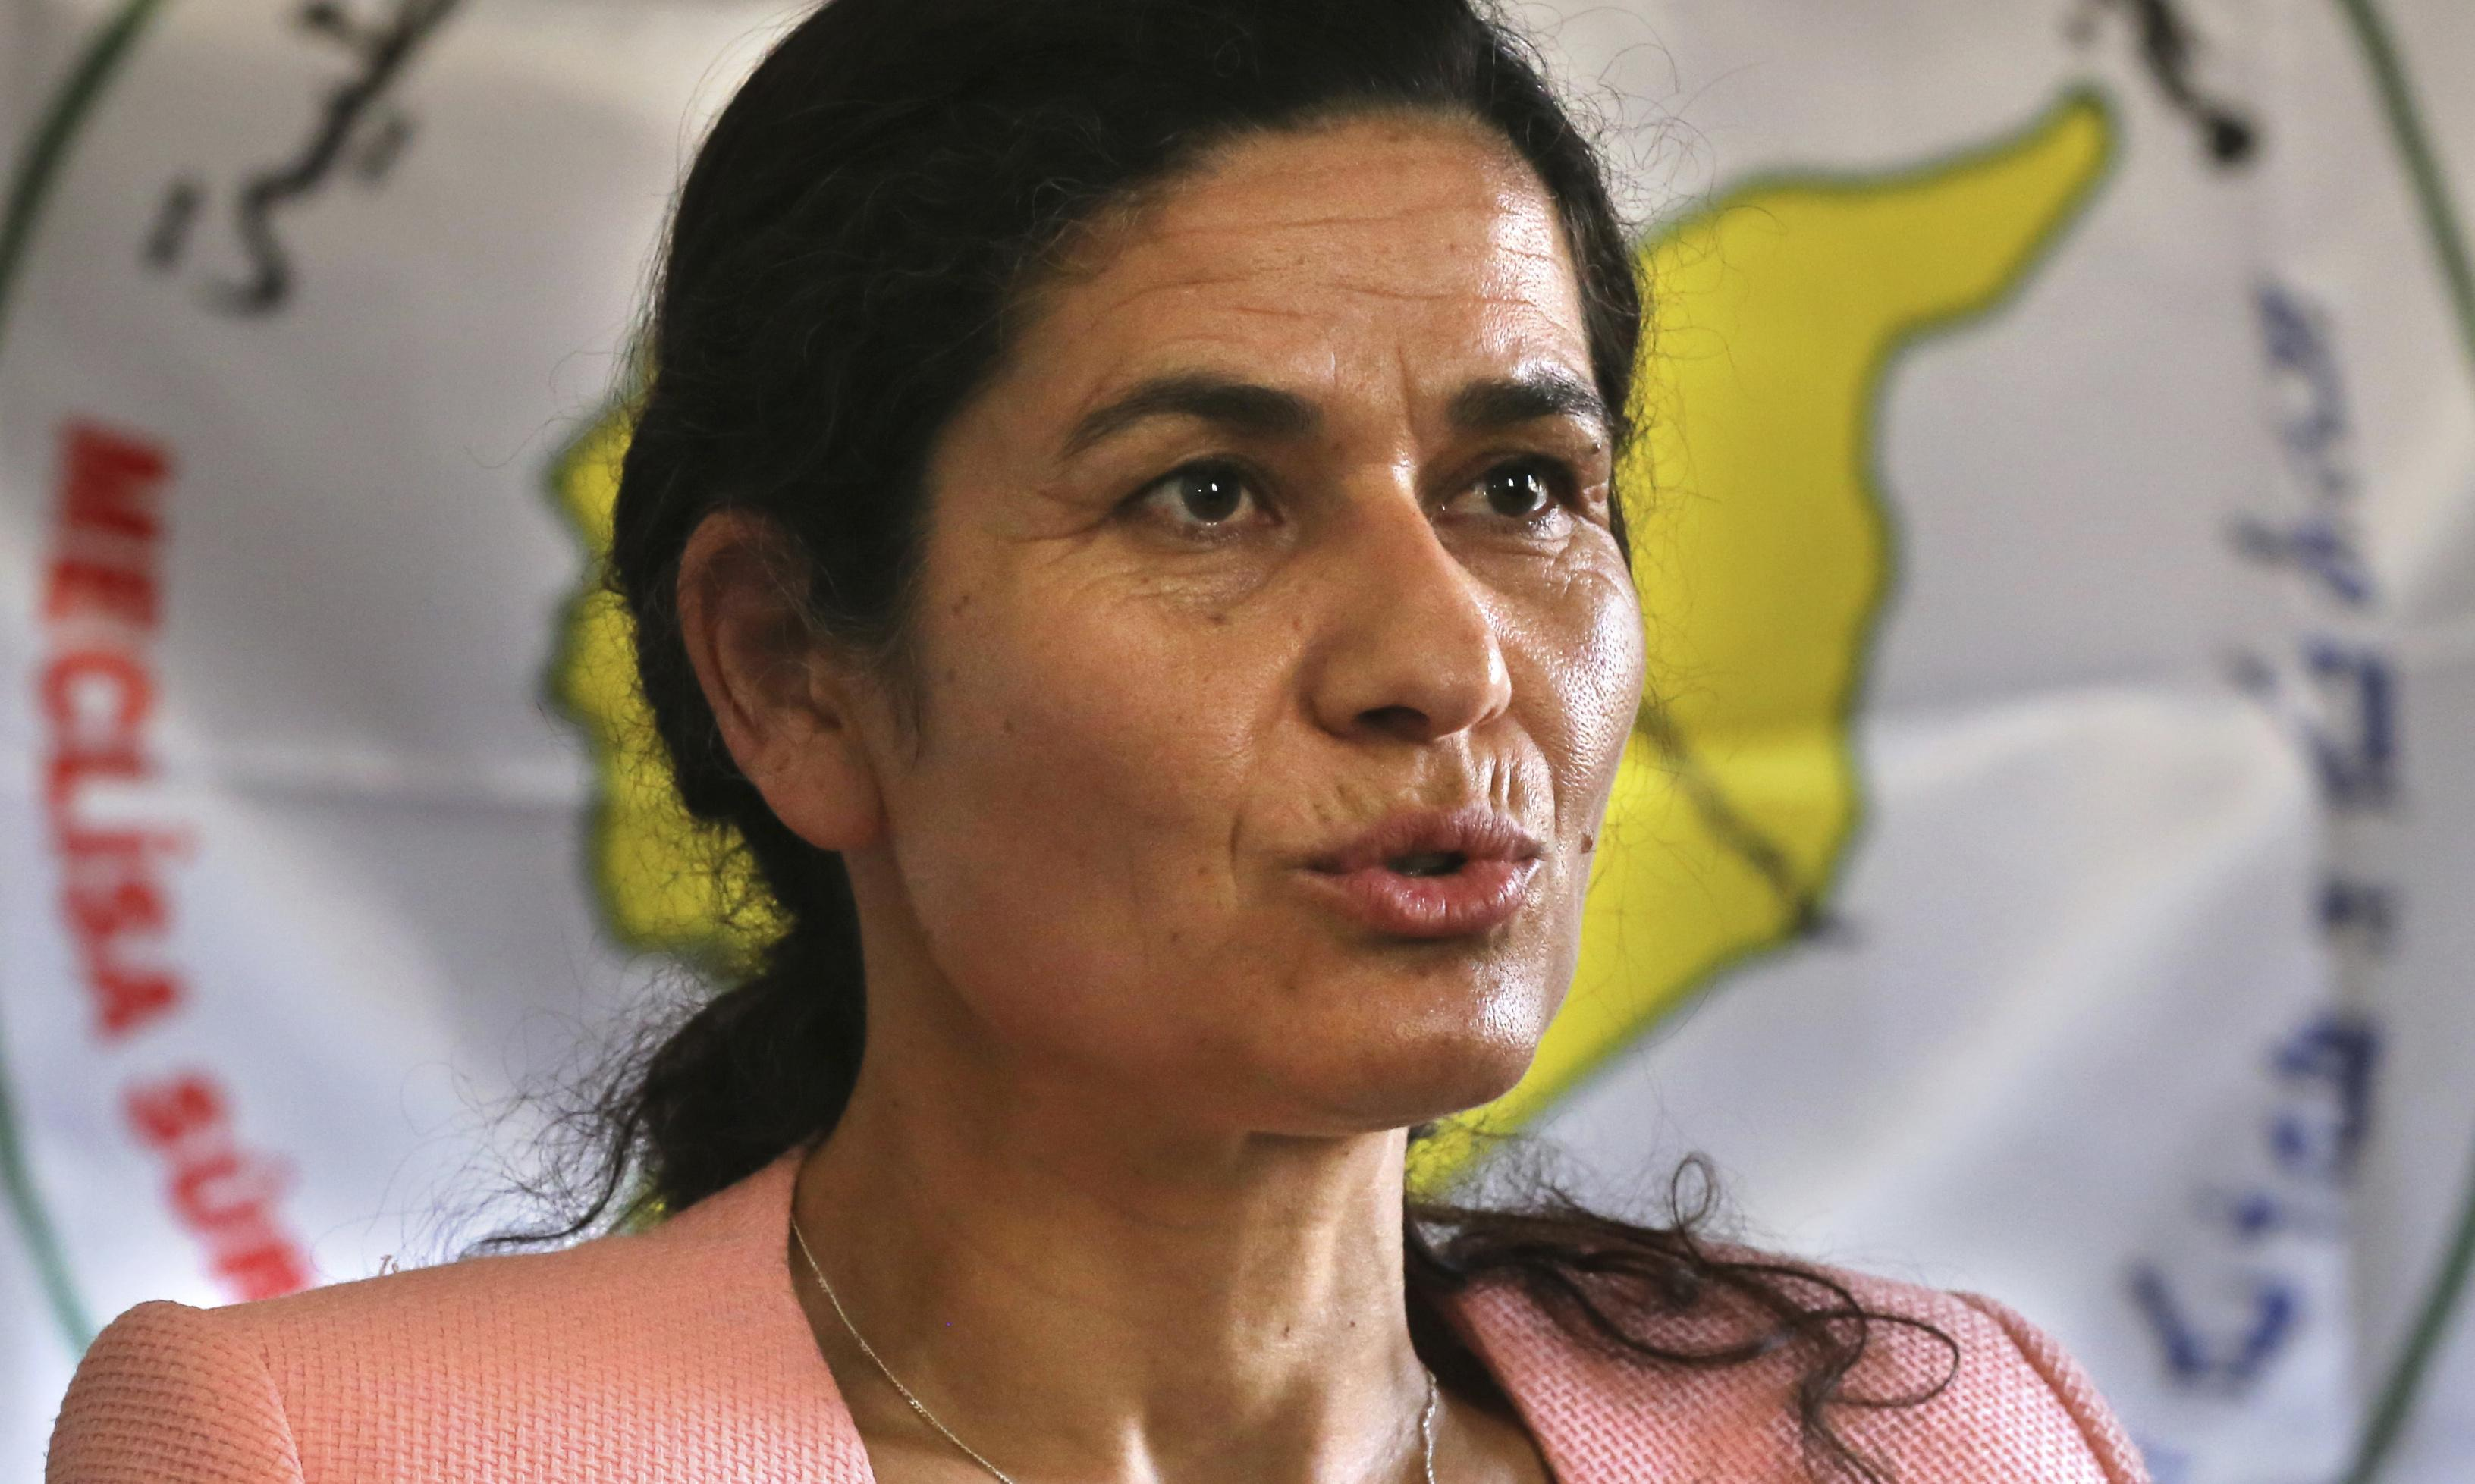 Syrian Kurdish leader calls for international force to protect Kurds